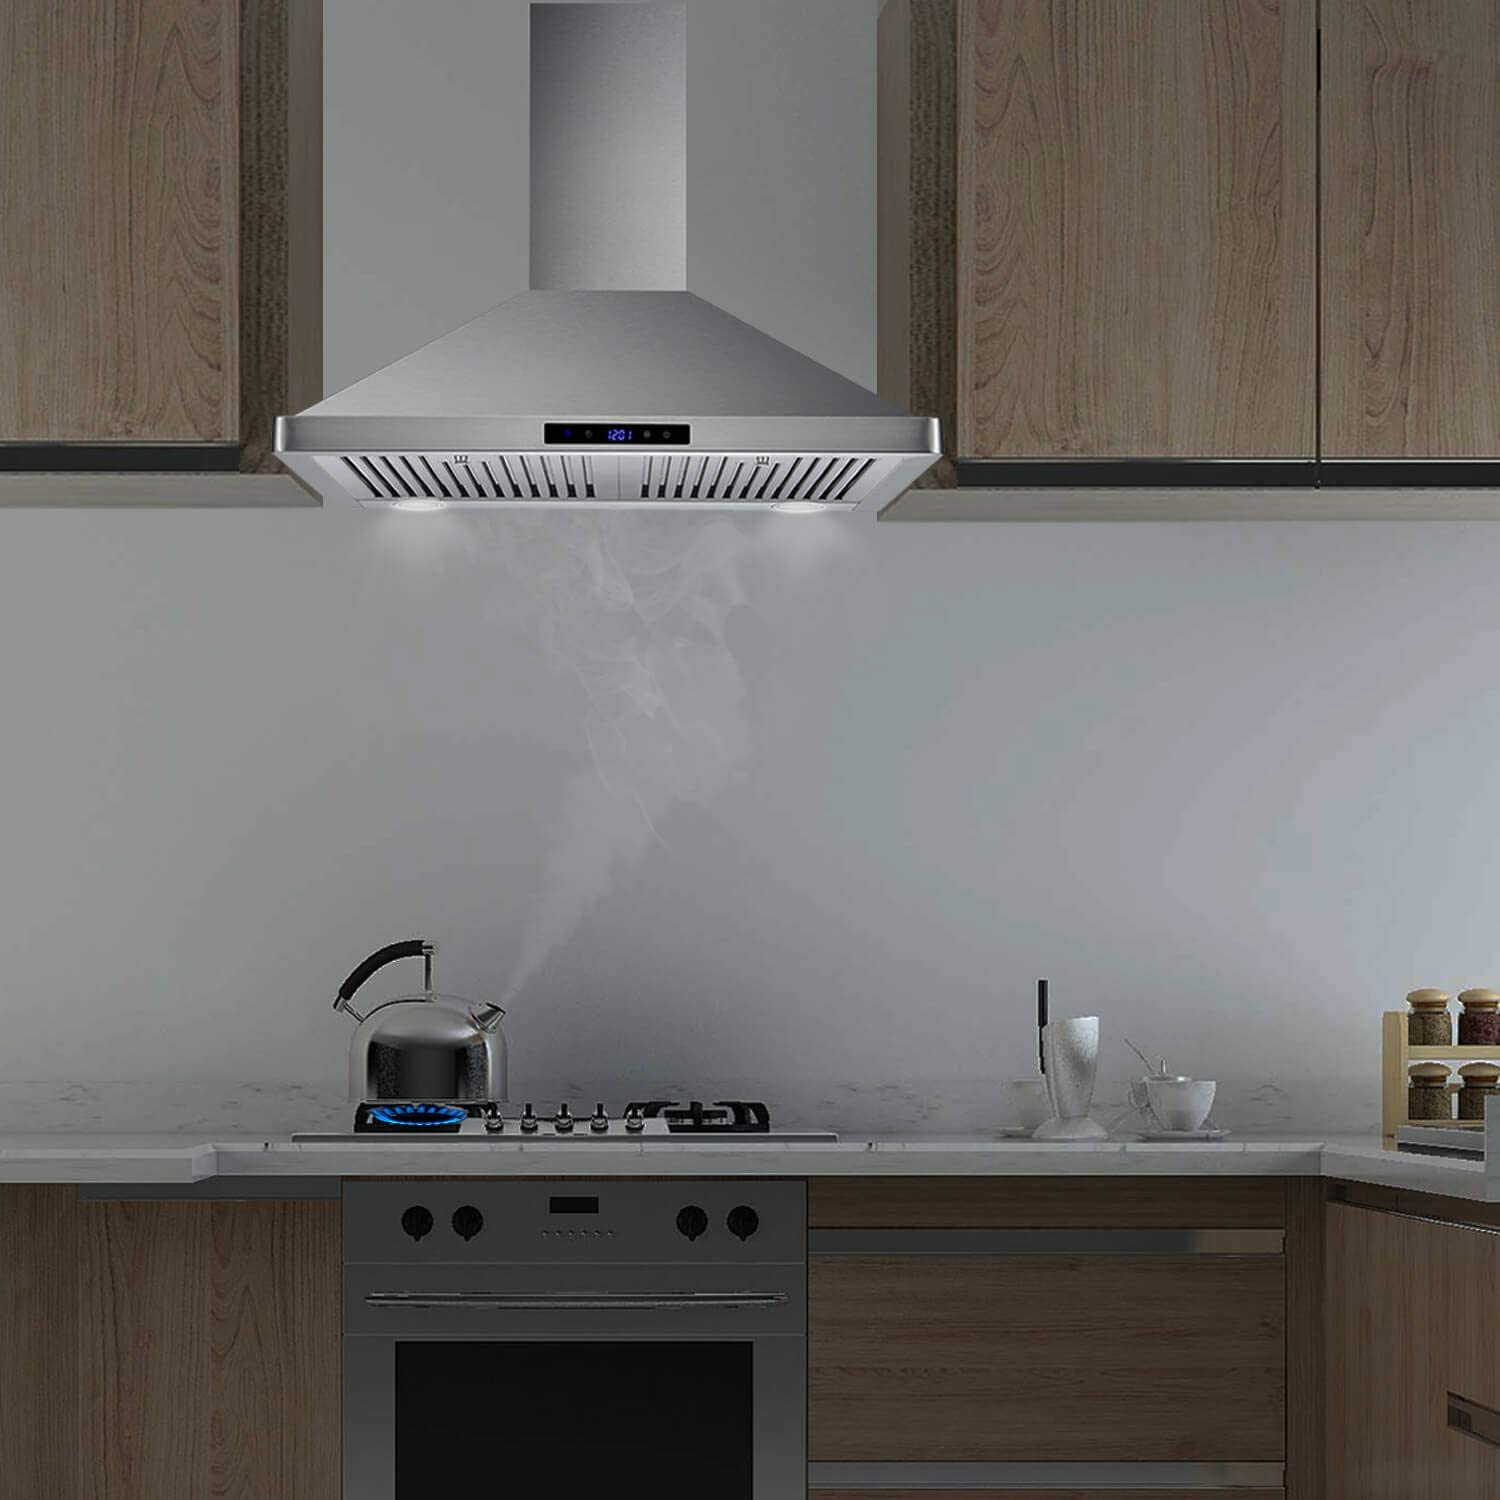 Wall Mount Range Hood 30 inch Kitchen Hood 700 CFM with Touch Control Permanent Filters Stainless Steel 3 Speed Exhaust Fan LED Light Tieasy